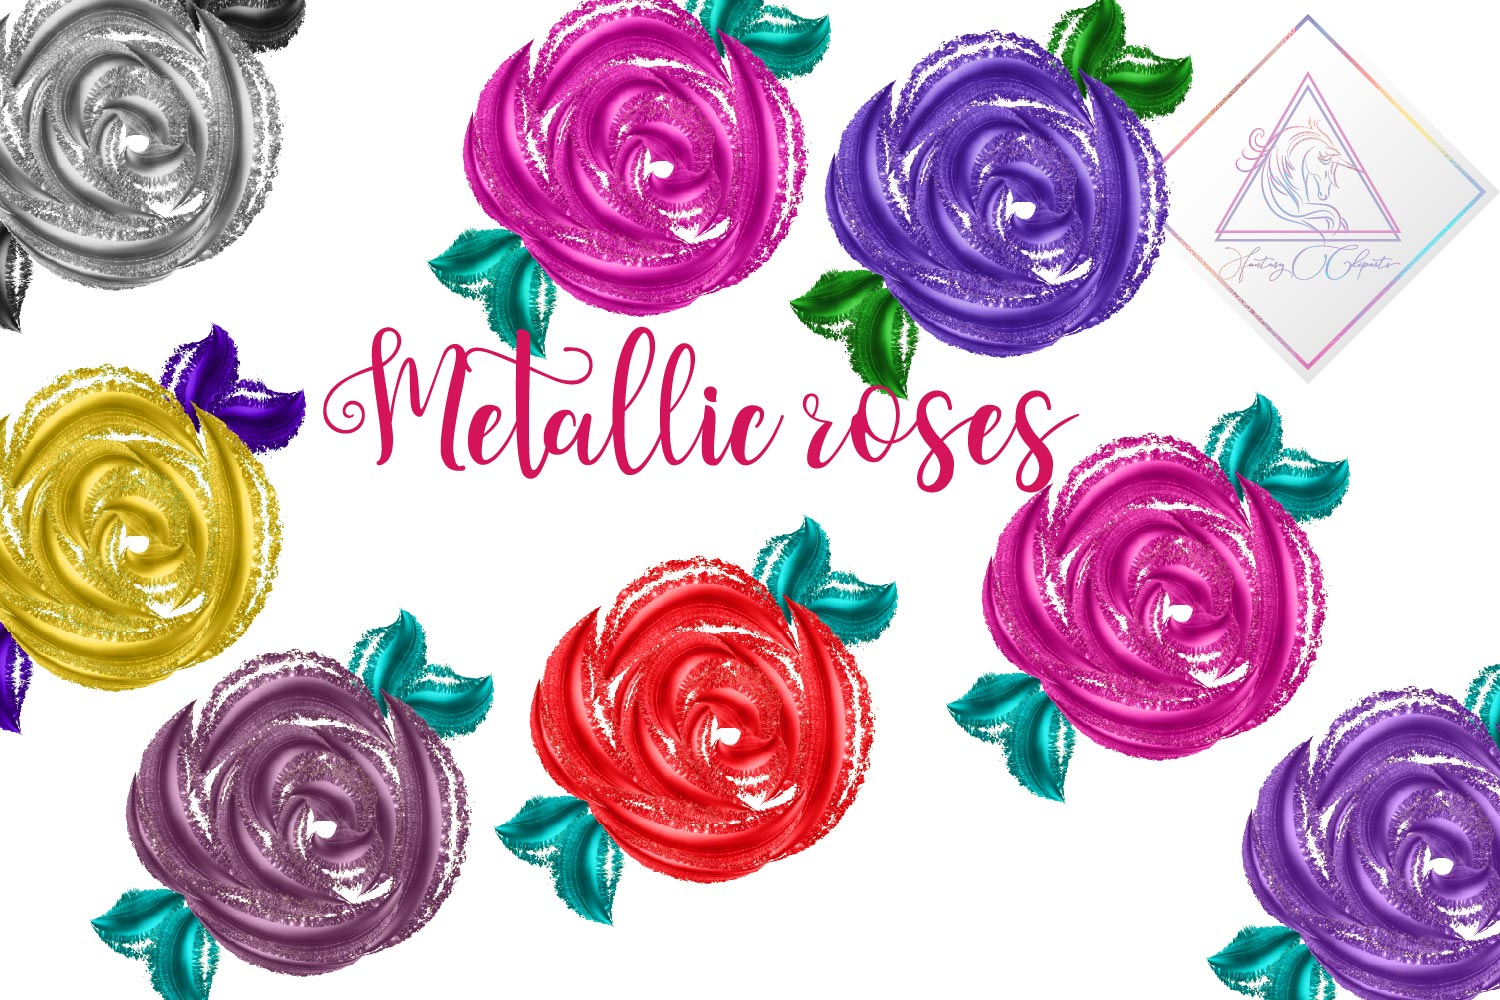 Metallic Roses Clipart example image 1